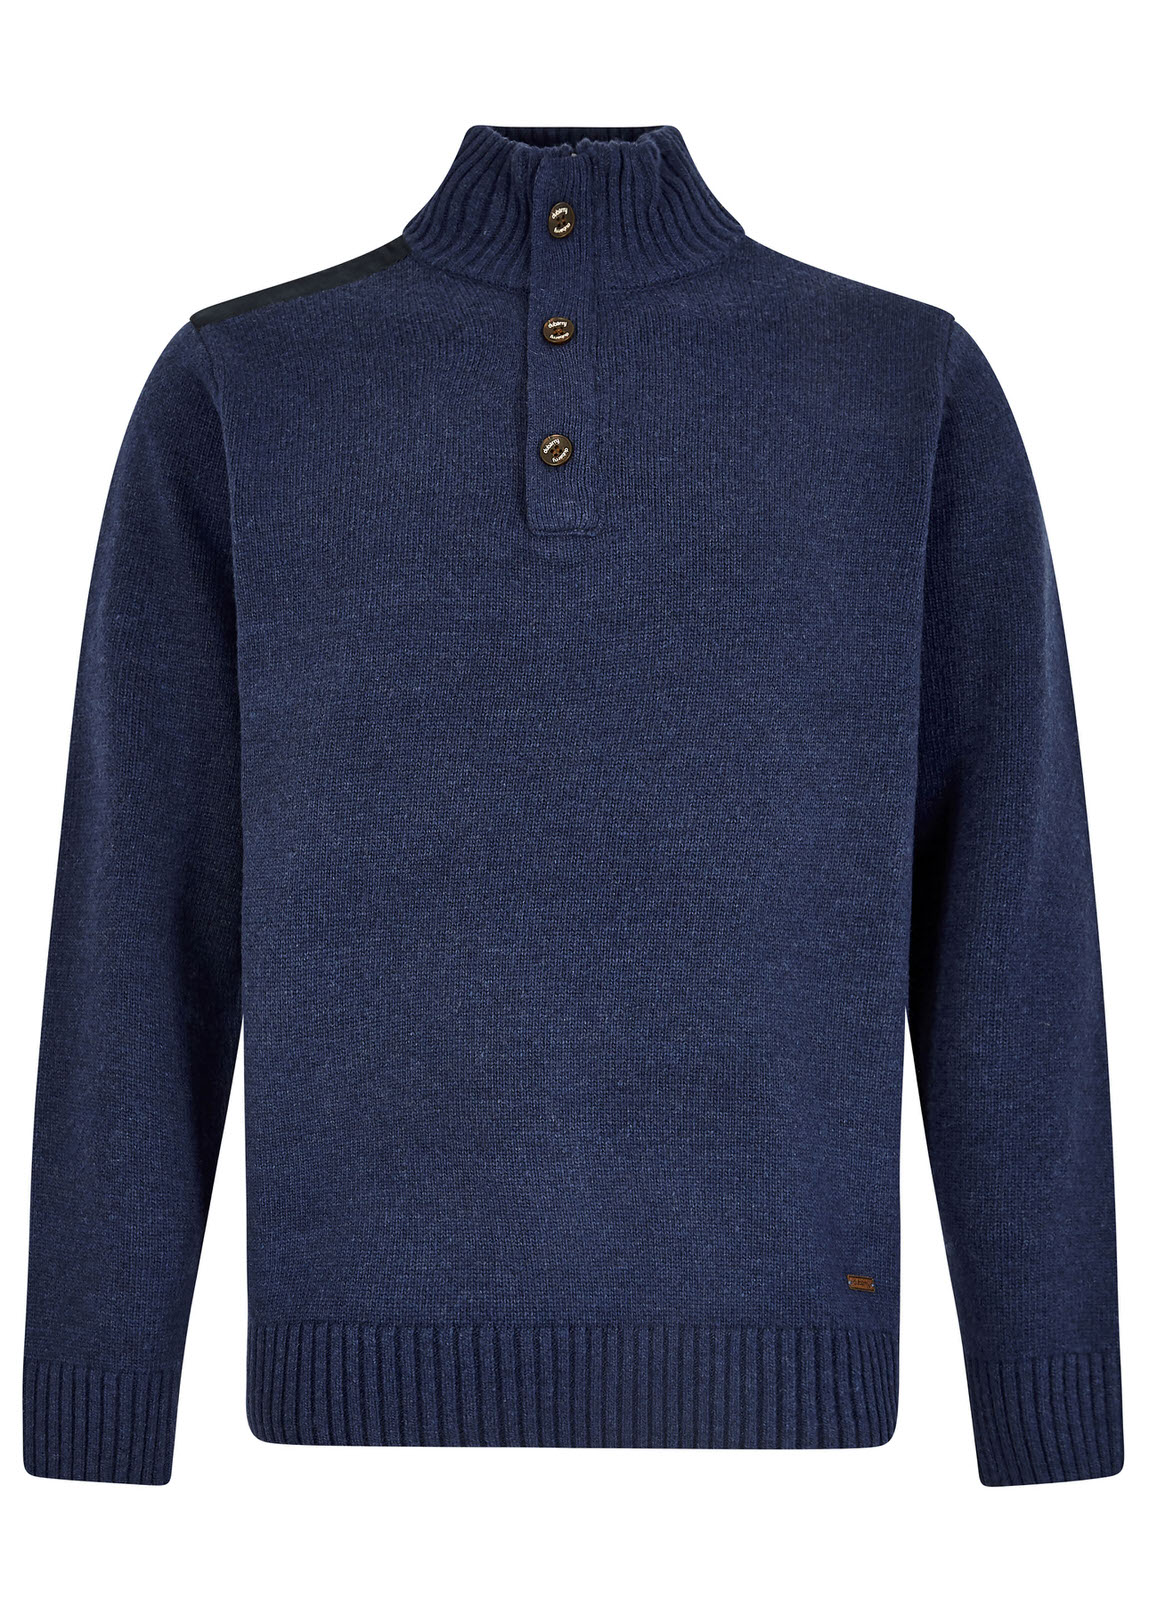 Lambert_Sweater_Denim_Image_1